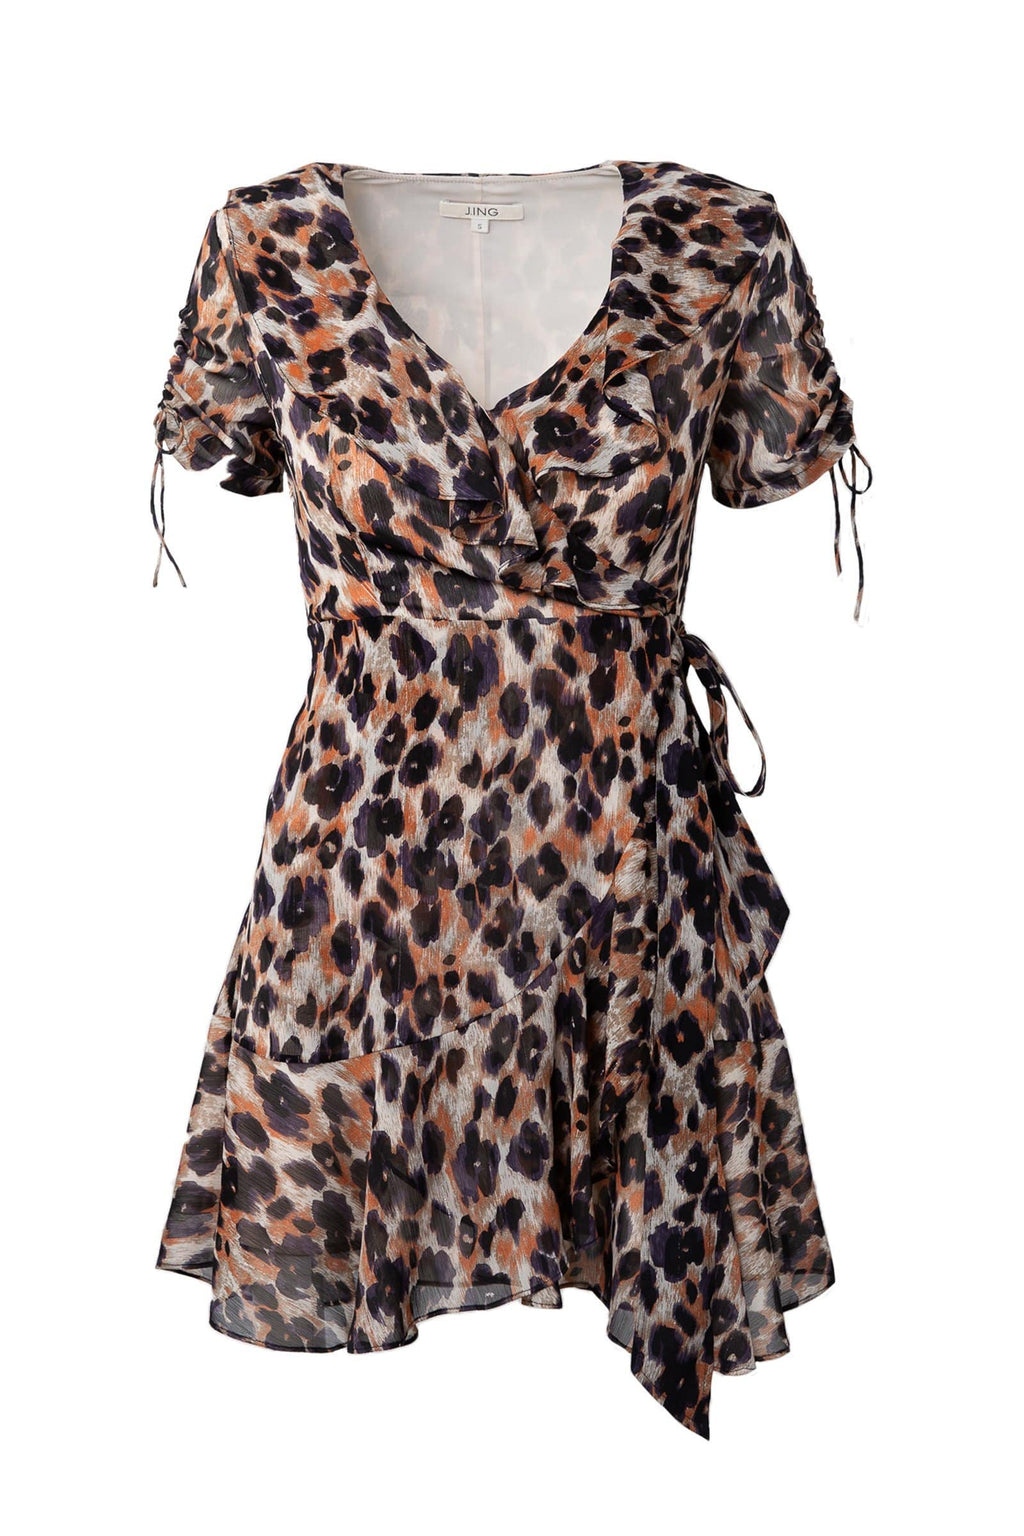 Wildcat Wrap Dress by J.ING women's clothing